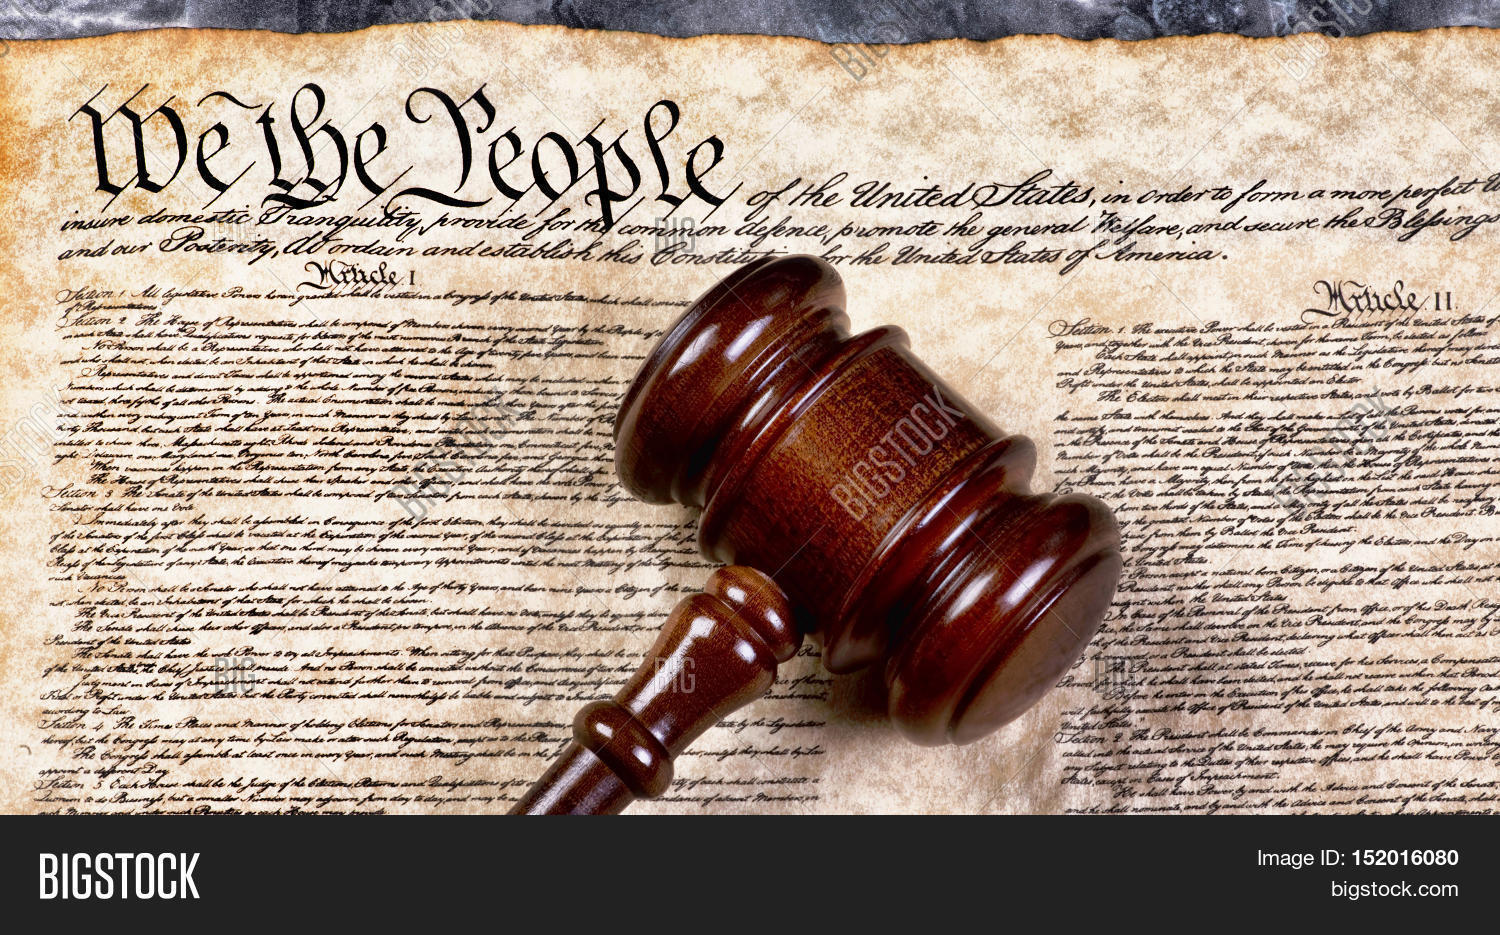 rights,law,amendment,america,document,historical,usa,judgment,mallet,lawyer,legal,courthouse,legislation,government,politics,liberty,gavel,old,freedom,hammer,people,enforcement,united,justice,tribunal,constitution,parchment,court,equality,states,declaration,democracy,patriotic,independence,judge,antique,wooden,vintage,preamble,judicial,decision,handwritten,glory,calligraphy,symbolic,american,bill,we